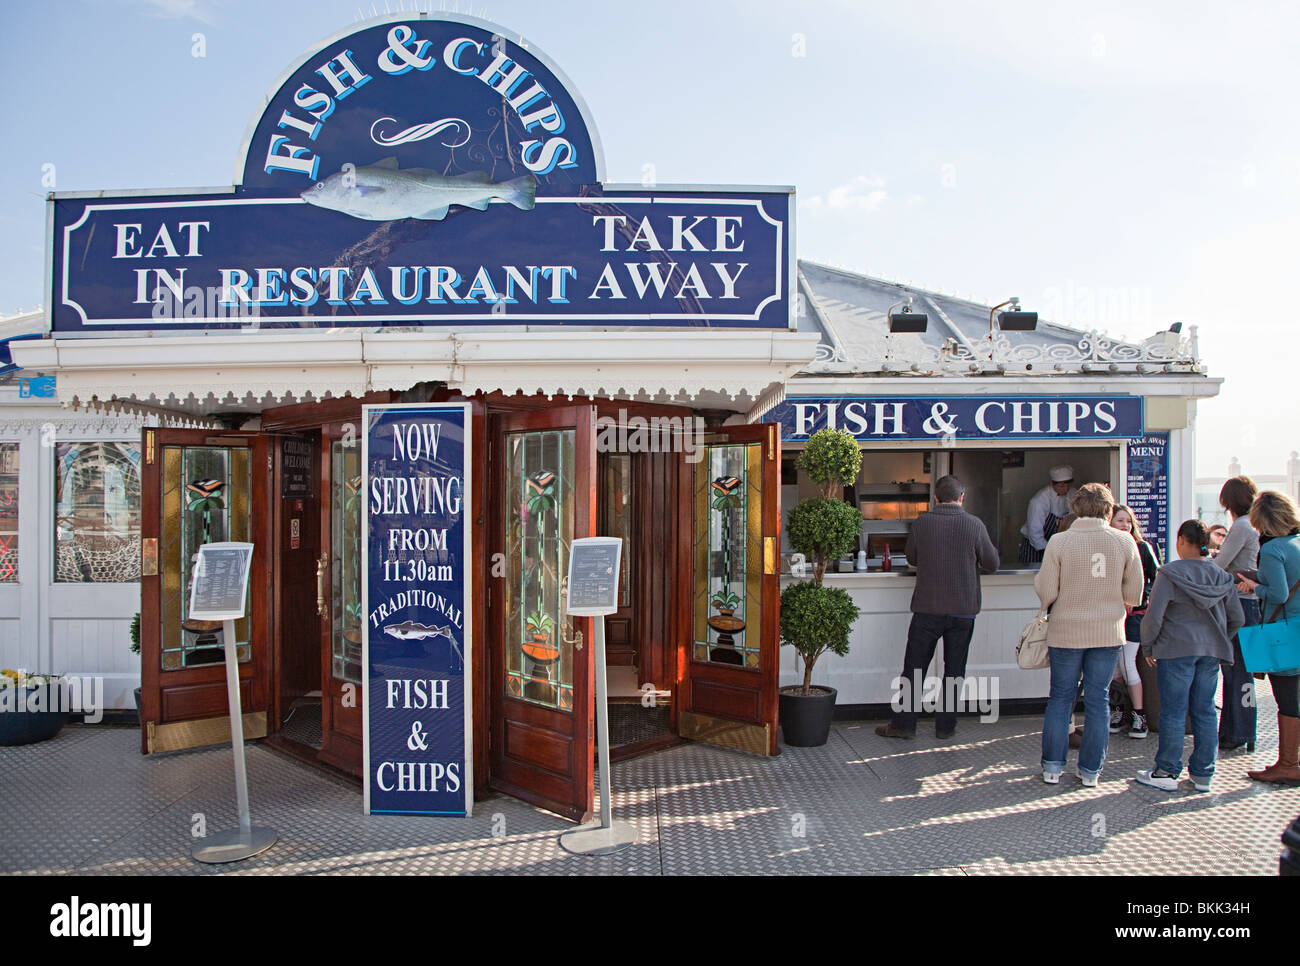 Fish and chip restaurant on brighton pier england uk stock for Fish chips restaurant